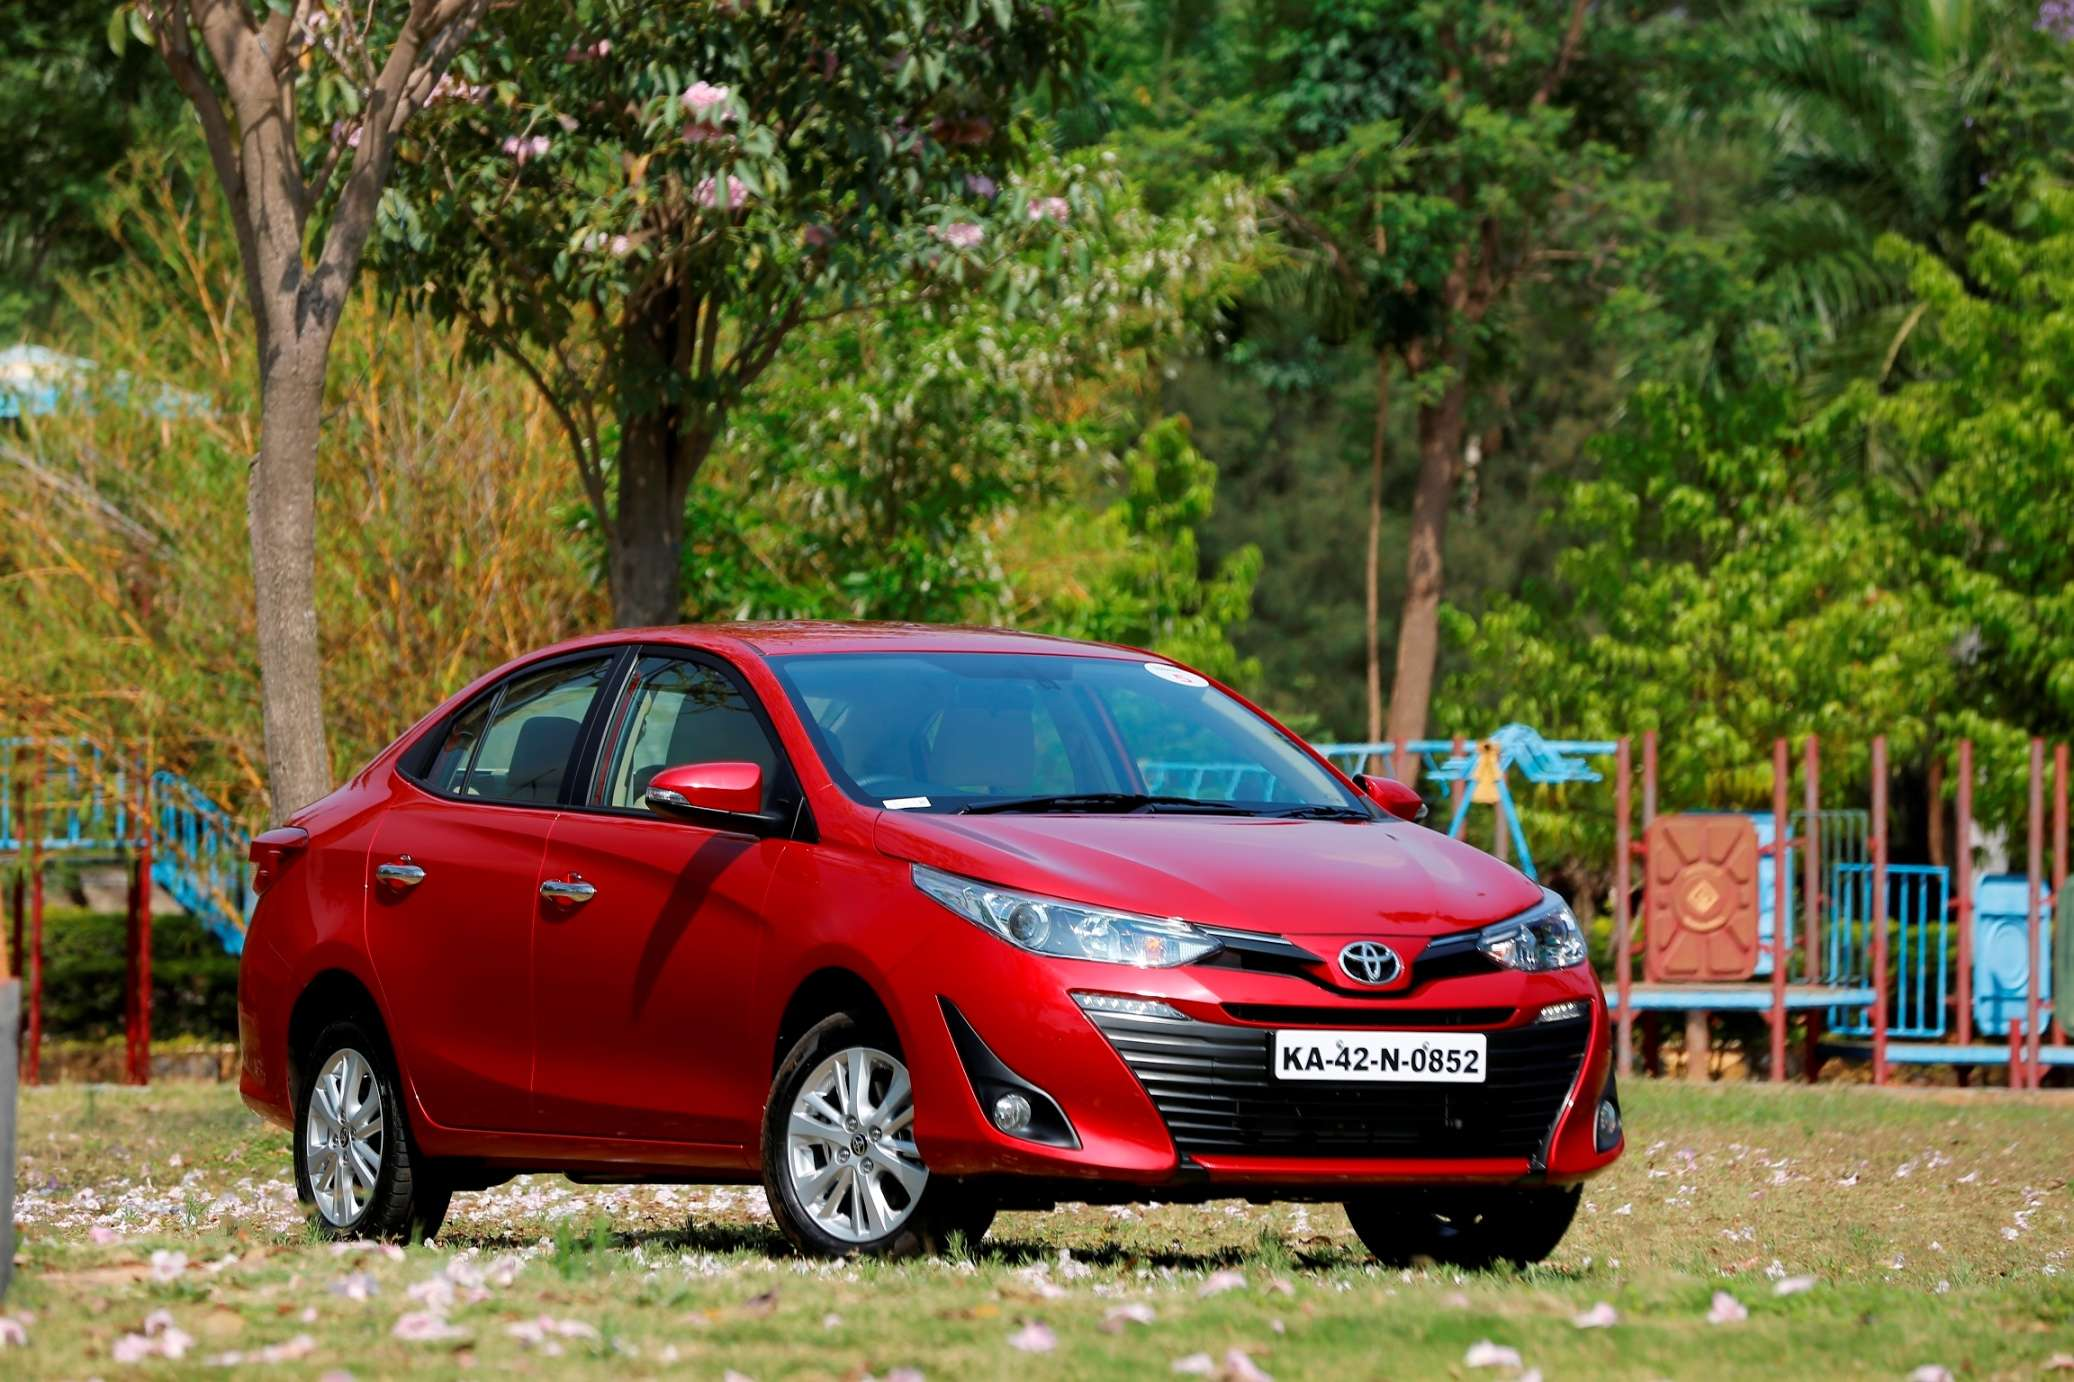 petrol cars: why indian carmakers are ditching diesel models and